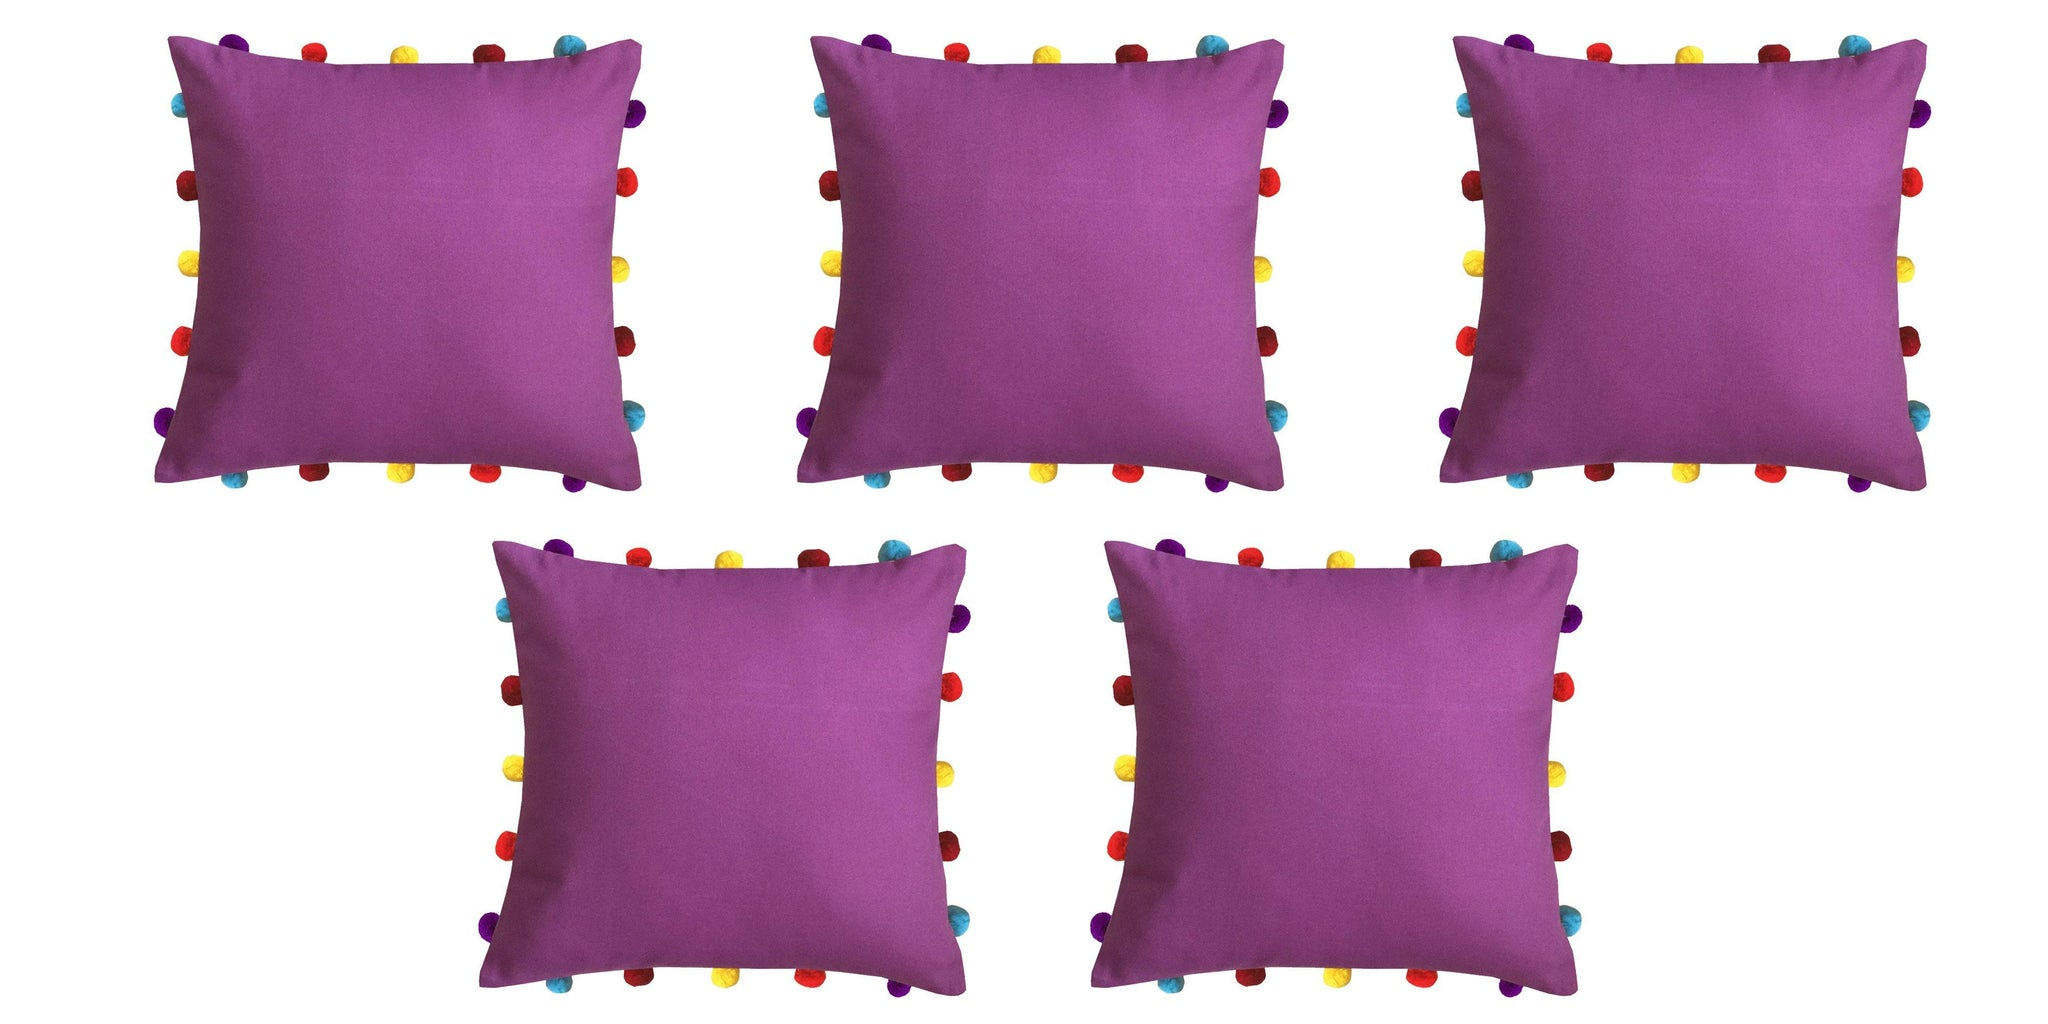 "Lushomes Bordeaux Cushion Cover with Colorful pom poms (5 pcs, 16 x 16"") - Lushomes"